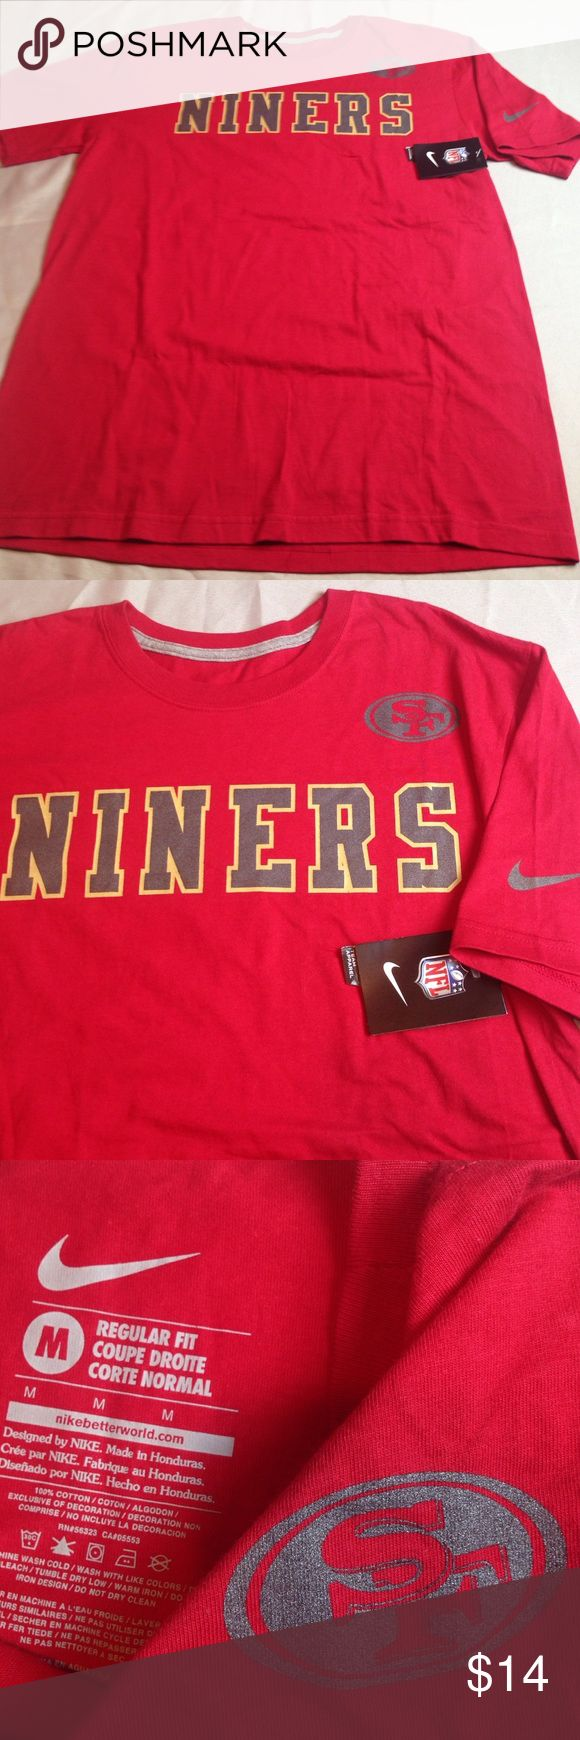 NFL SAN FRANCISCO NINERS FOOTBALL TEAM NIKE TOP NFL SAN FRANCISCO NINERS FOOTBALL TEAM NIKE TOP TEE NEW WITH TAGS EXCELLENT SIZE M MEN Nike Shirts Tees - Short Sleeve